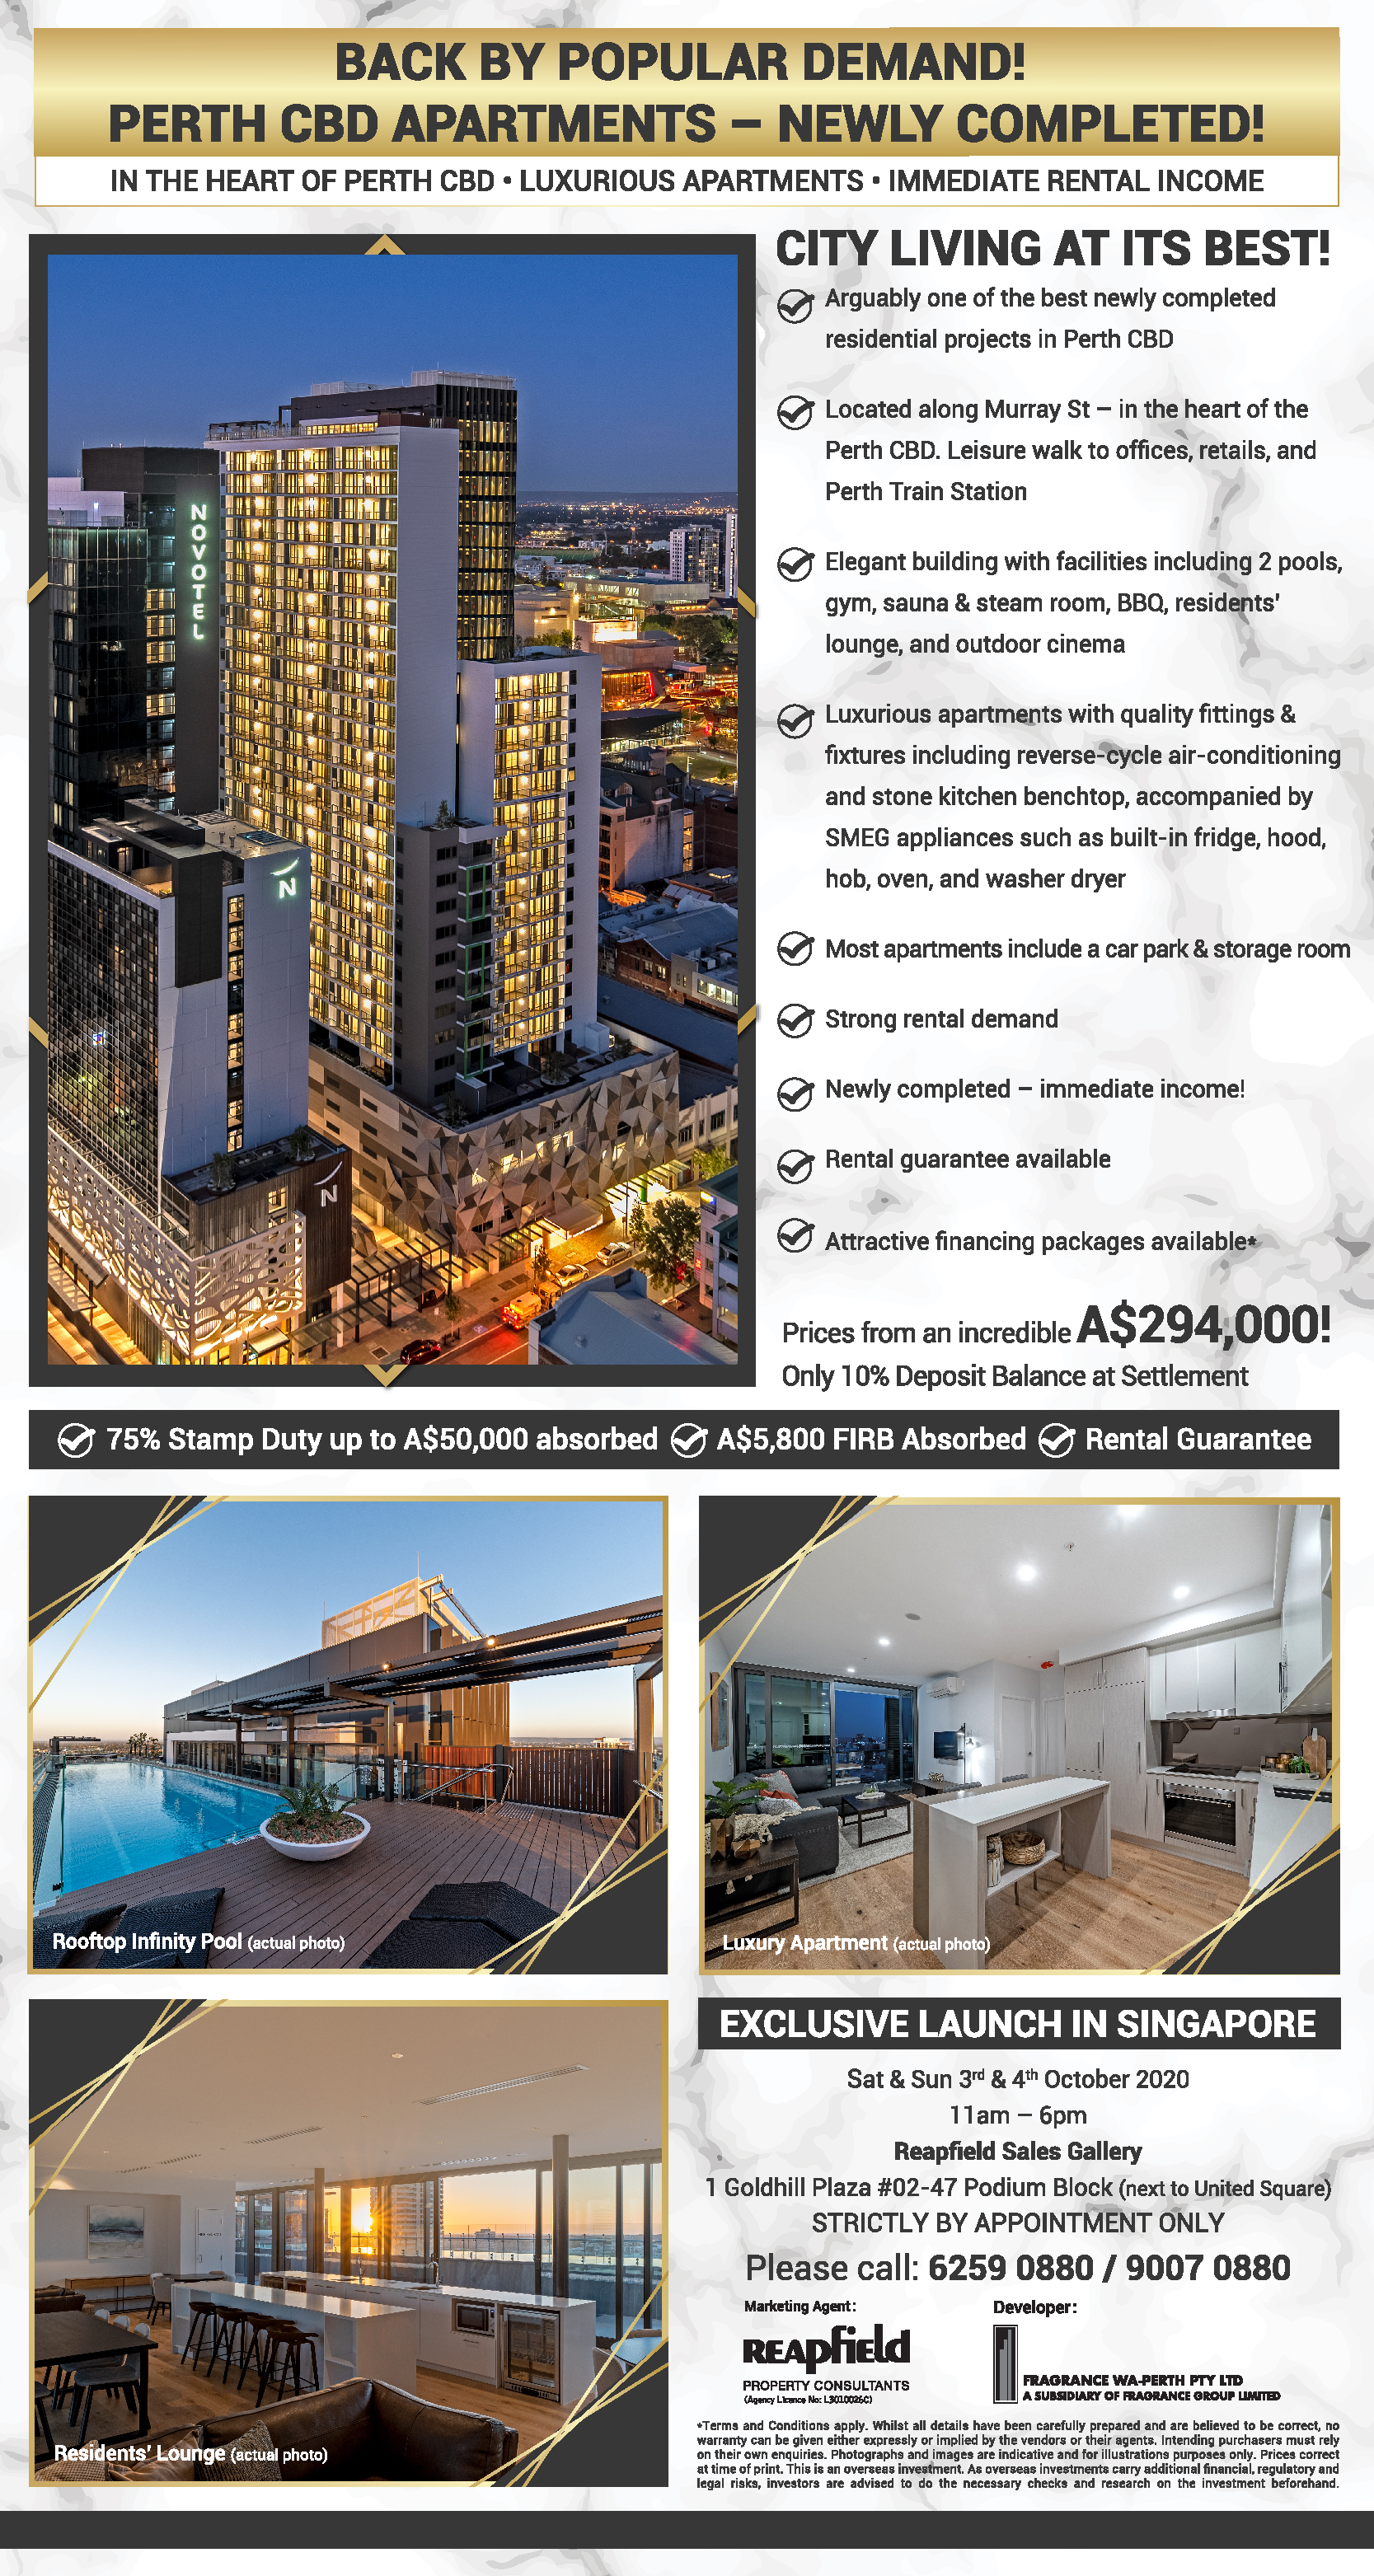 Perth CBD Apartment - Newly Completed (Event) - Reapfield ...